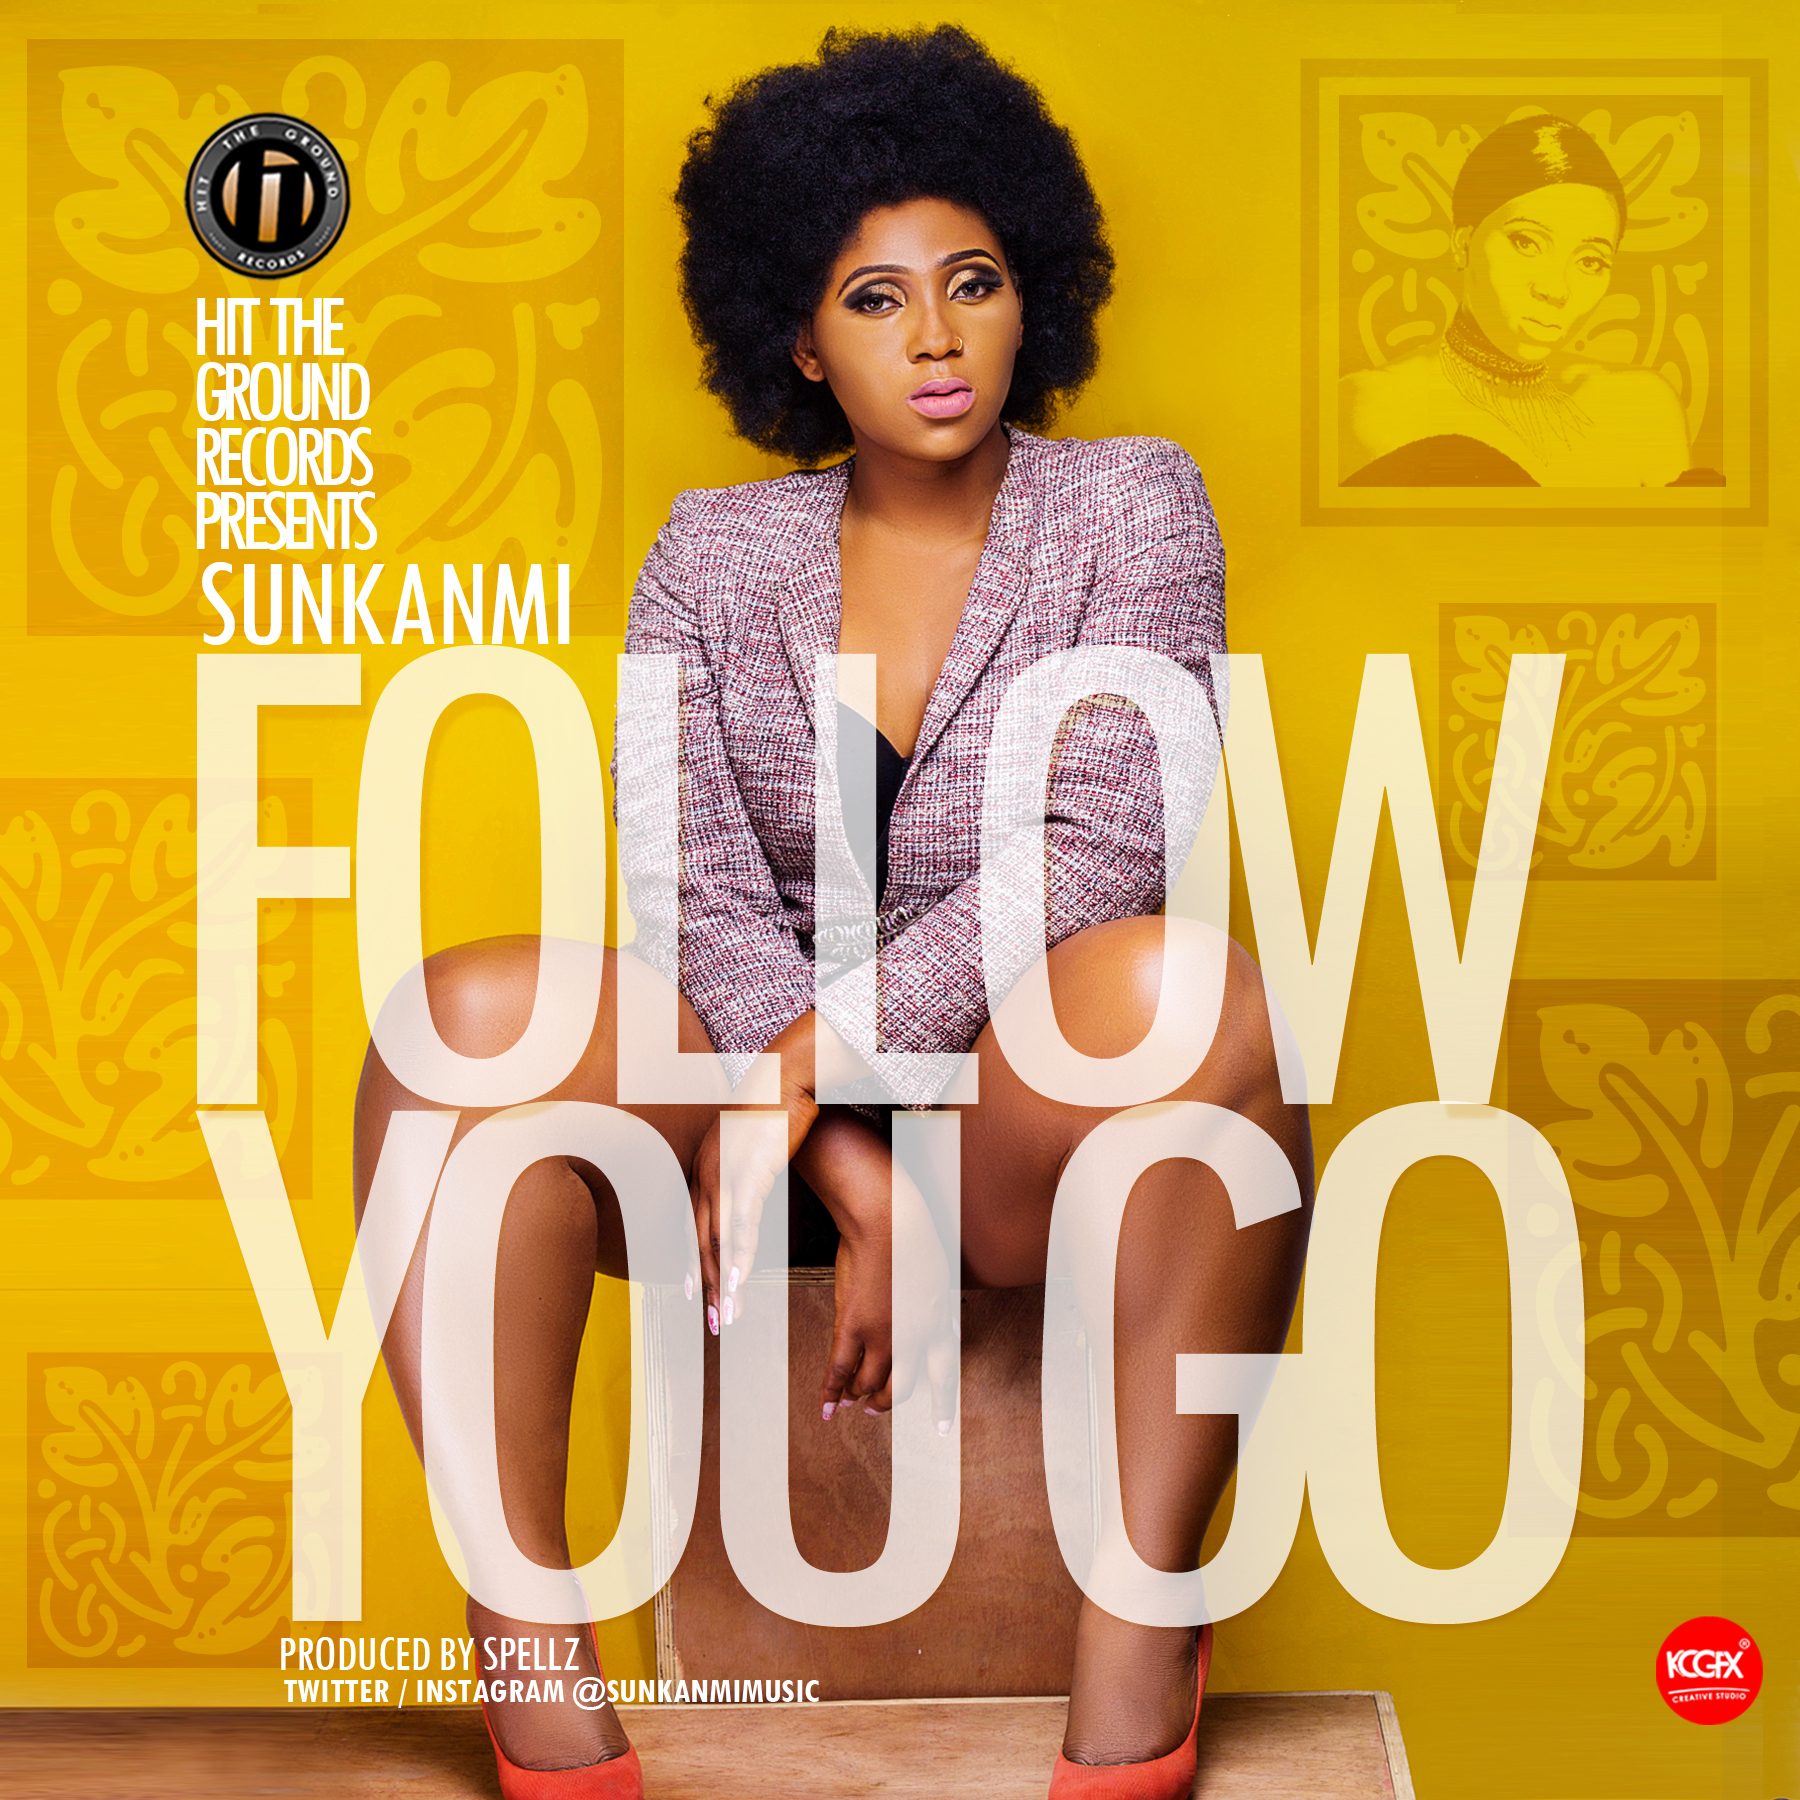 Sukanmi – Follow You Go